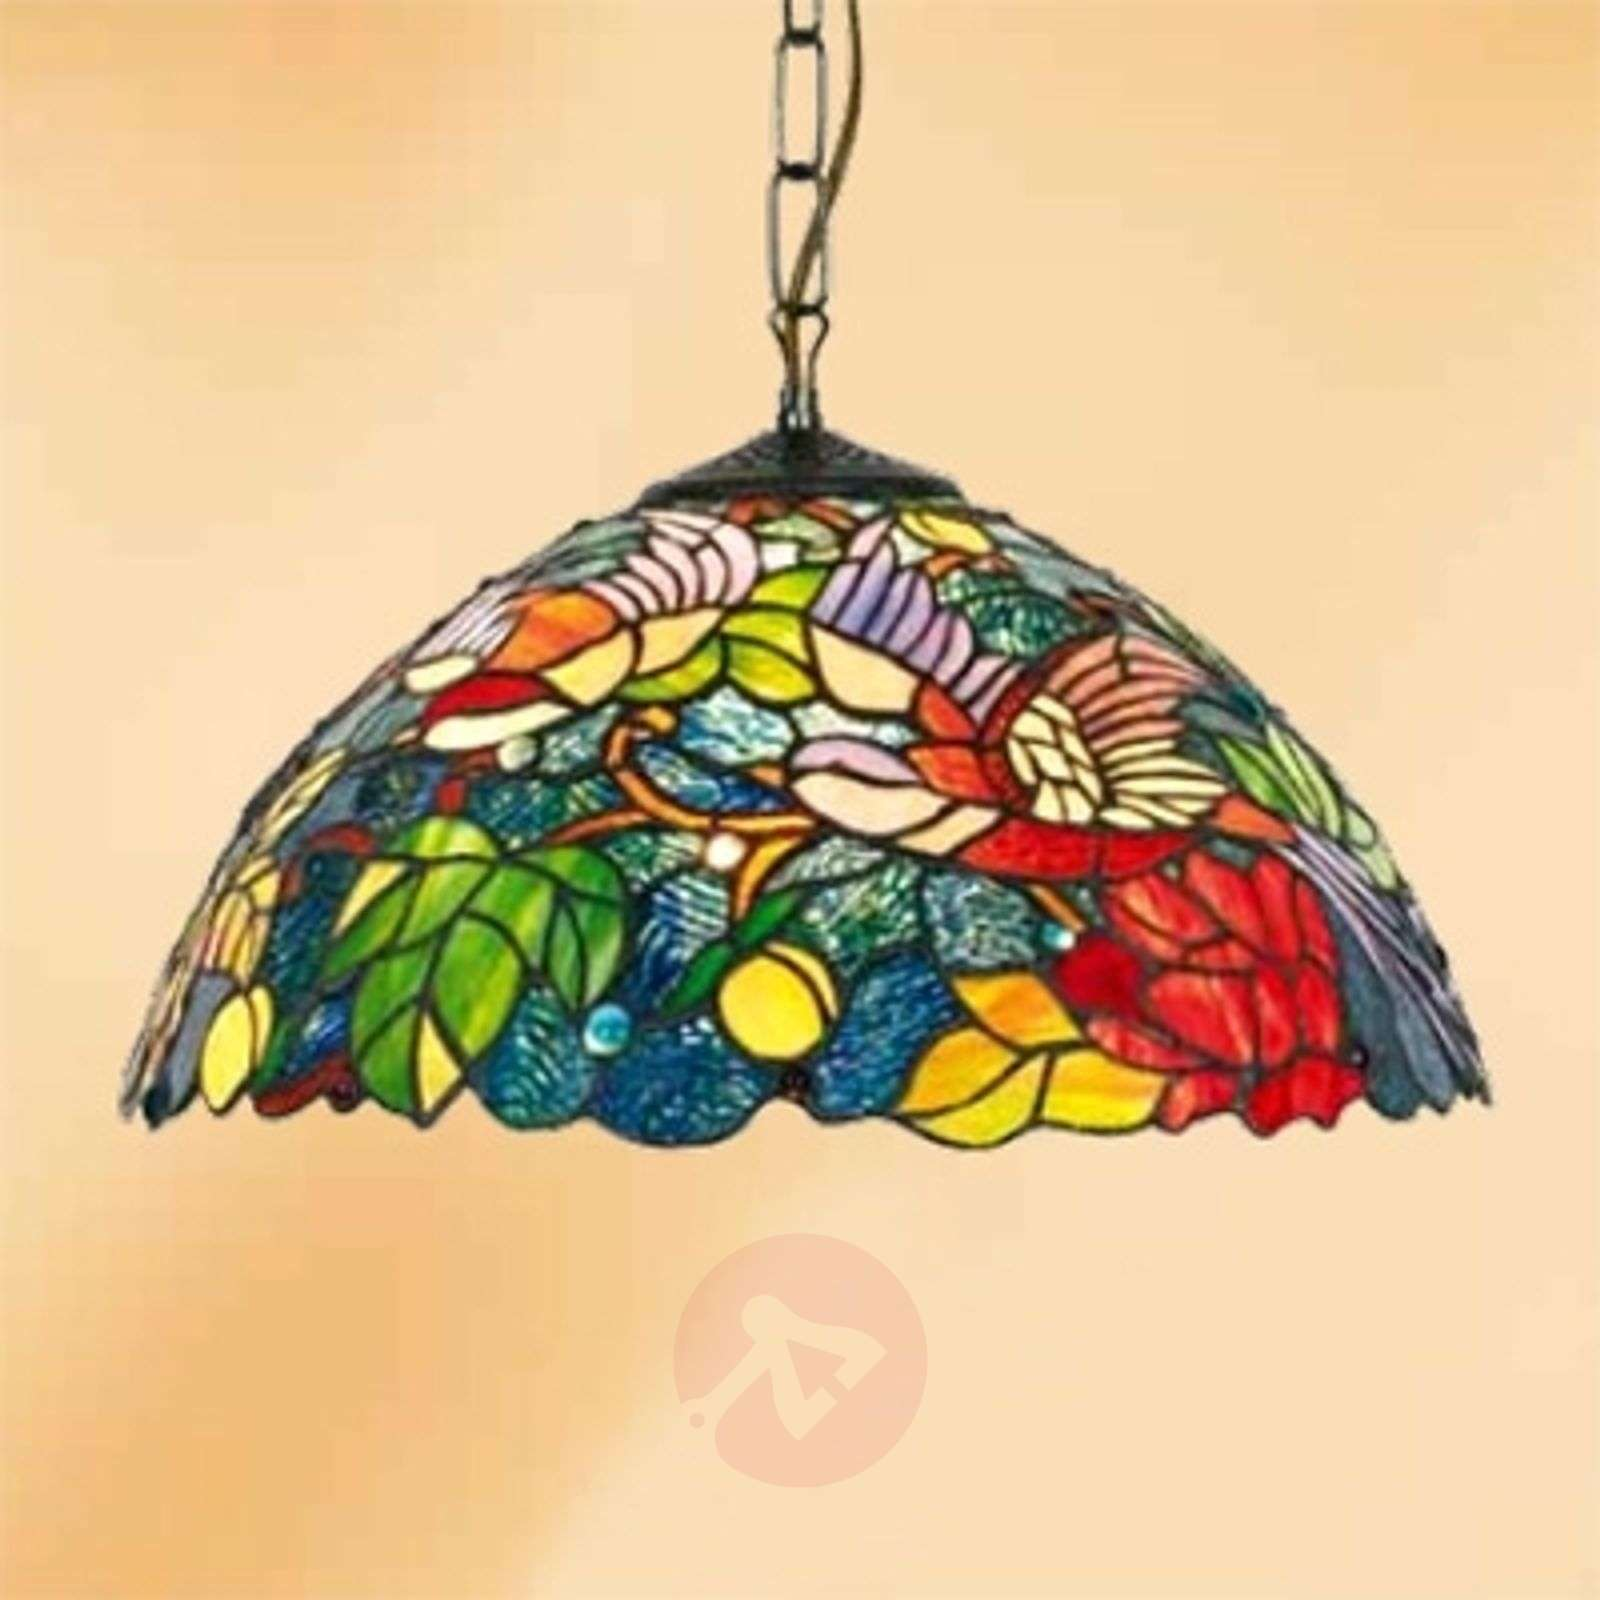 Sienna attractive hanging light, 2-bulb-1032292-01